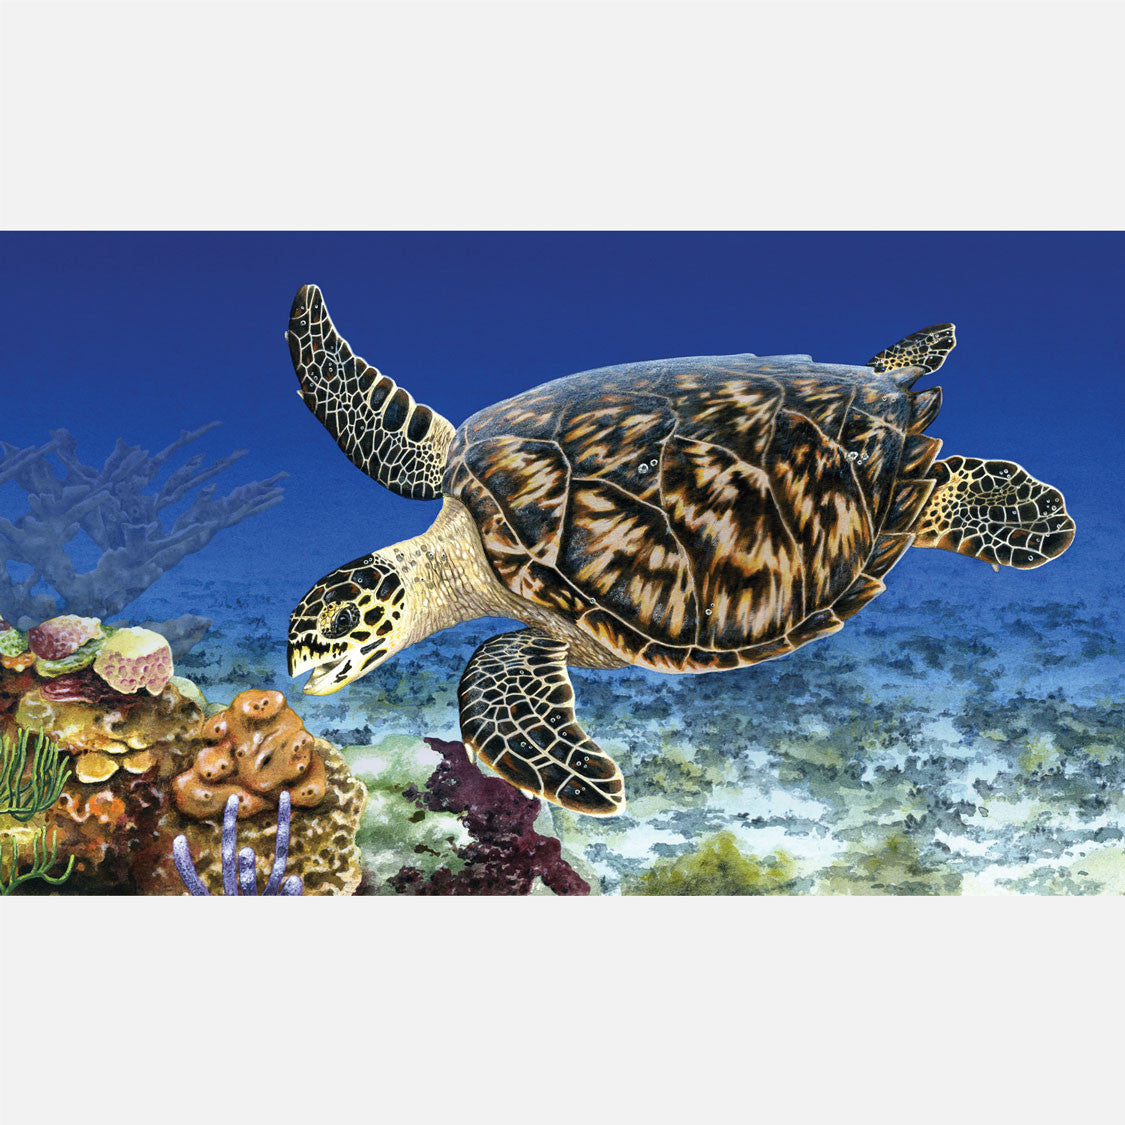 This beautiful illustration is of a hawksbill sea turtle, Eretmochelys imbricata, foraging on sponges on a coral reef.